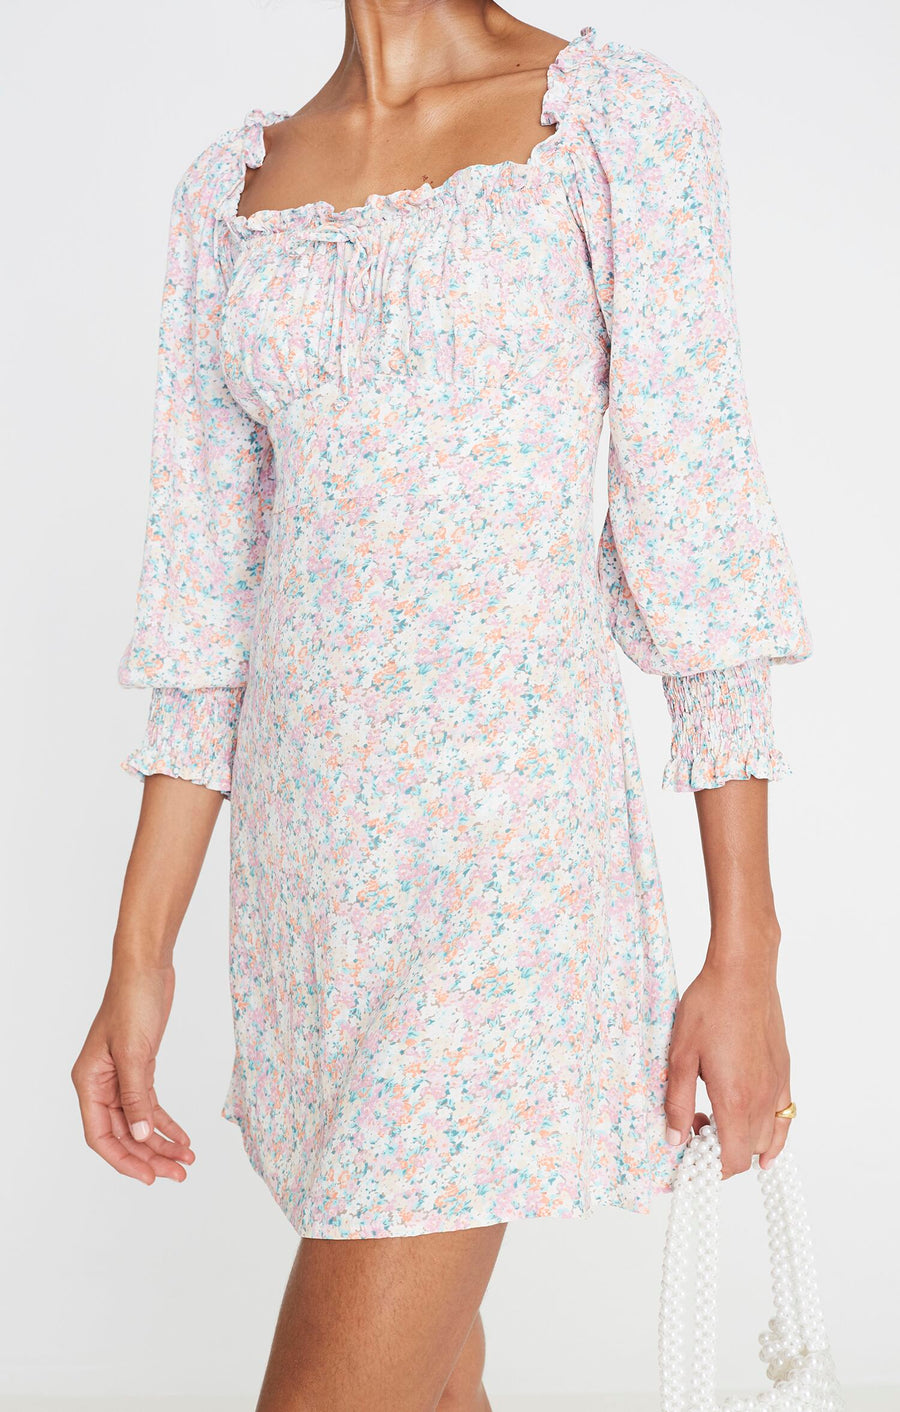 Faithfull Ira Mini Dress Vionette Floral Print Pink